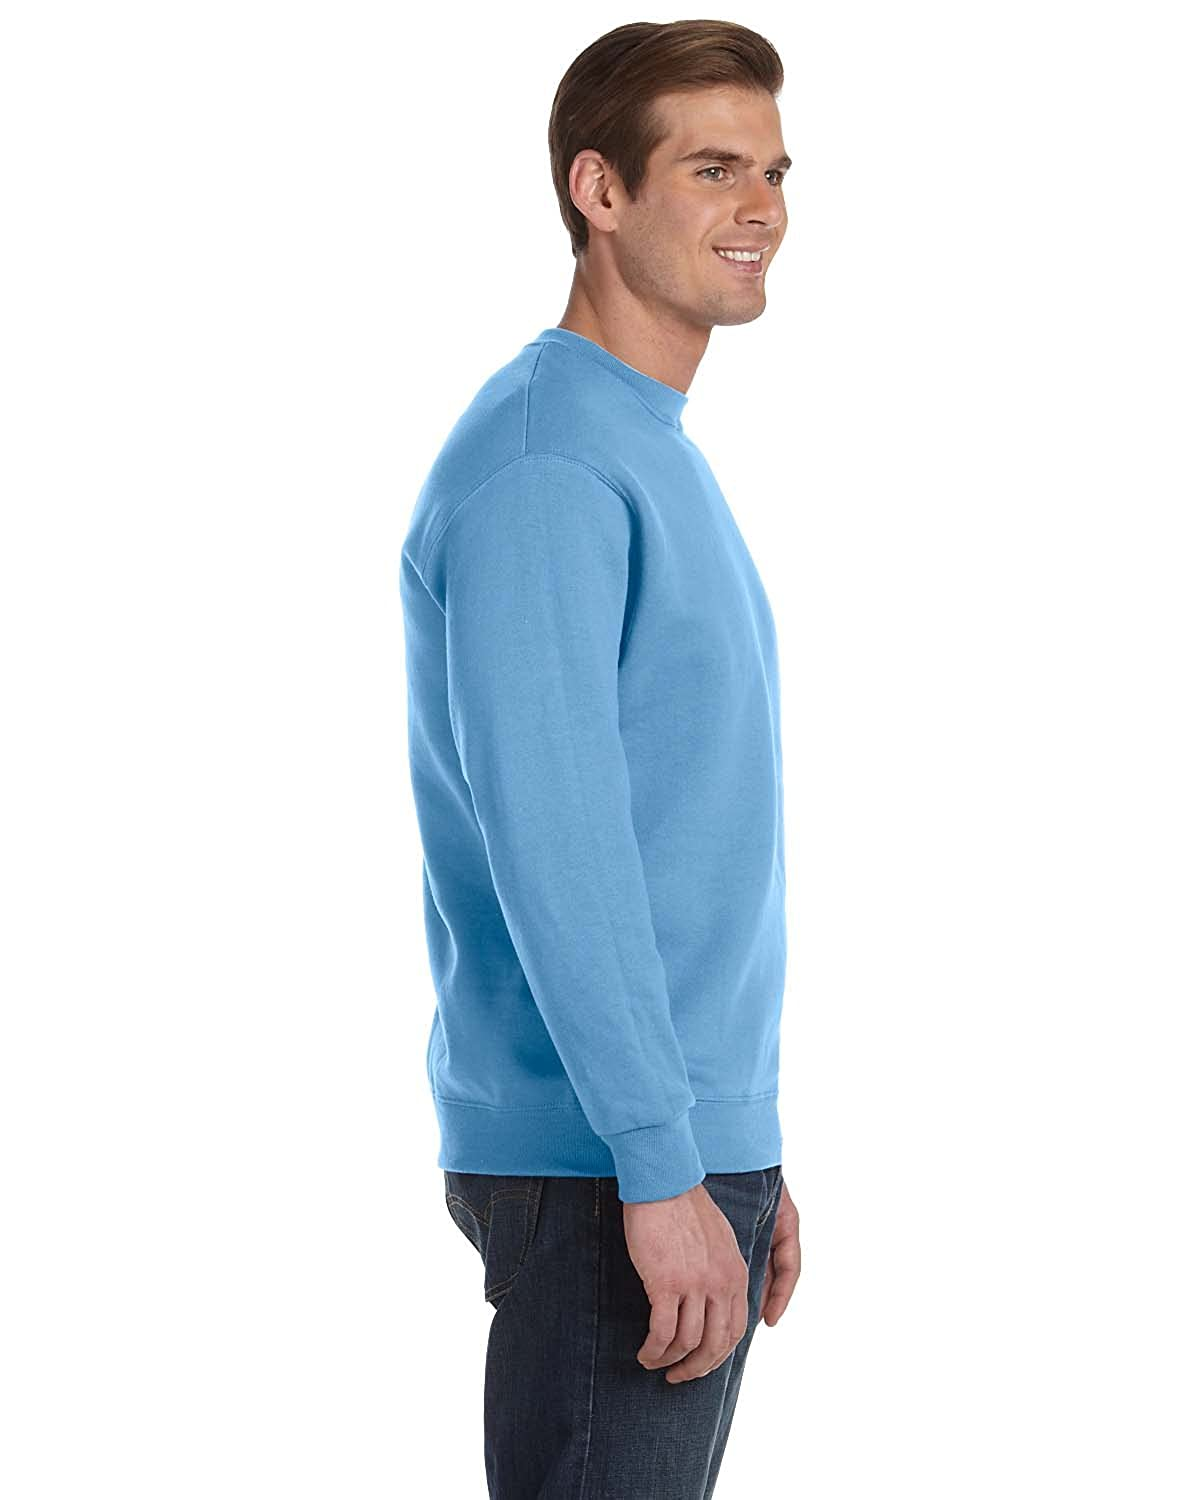 DryBlend? 50//50 Fleece Crew -Carolina B -L-12PK G120 Gildan Mens 9.3 oz